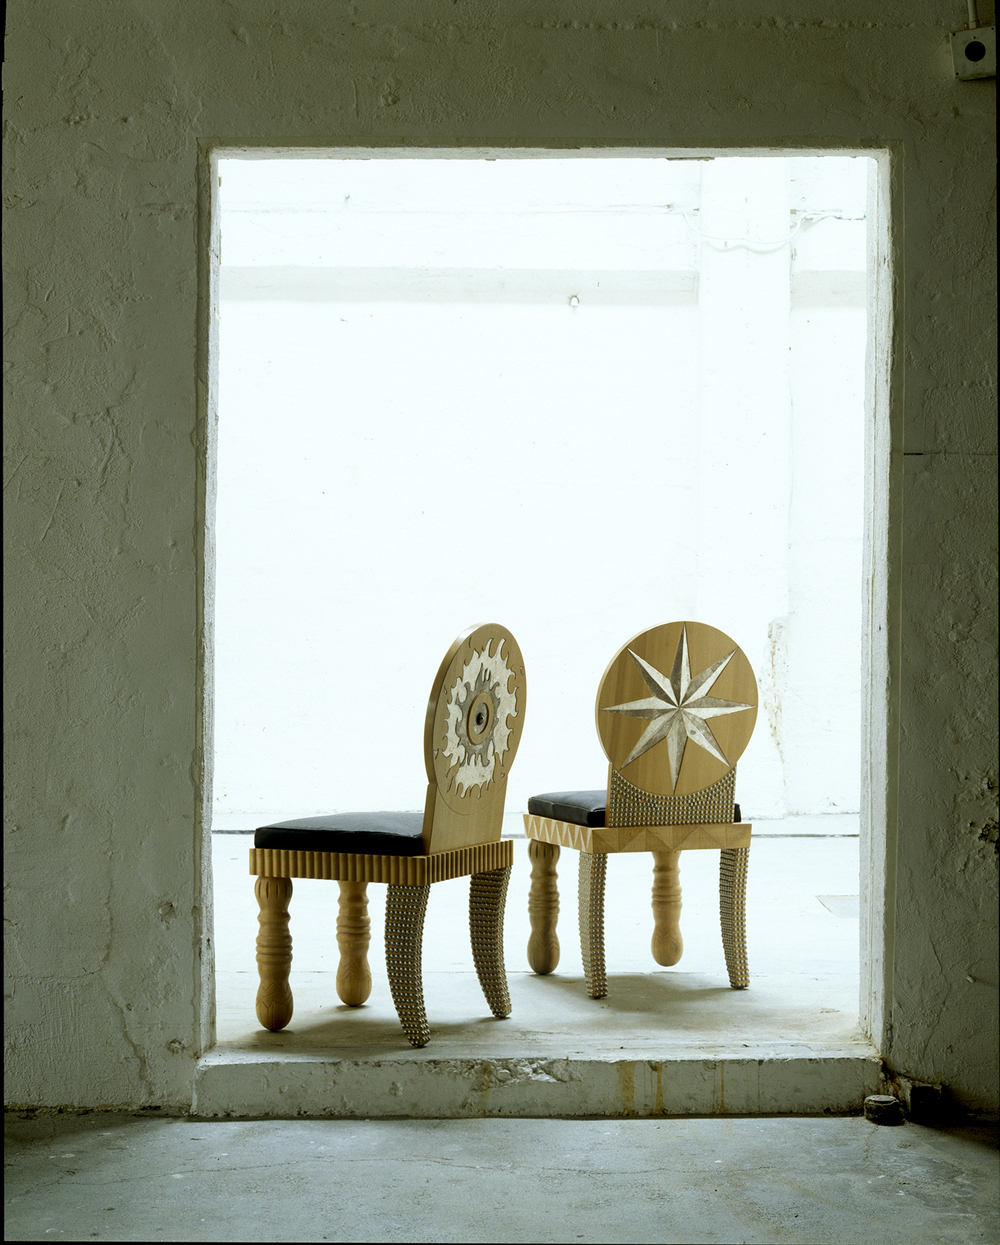 Circle Sunburst and Starburst Chairs-OAKLAND MUSEUM, Oakland, CA.jpg